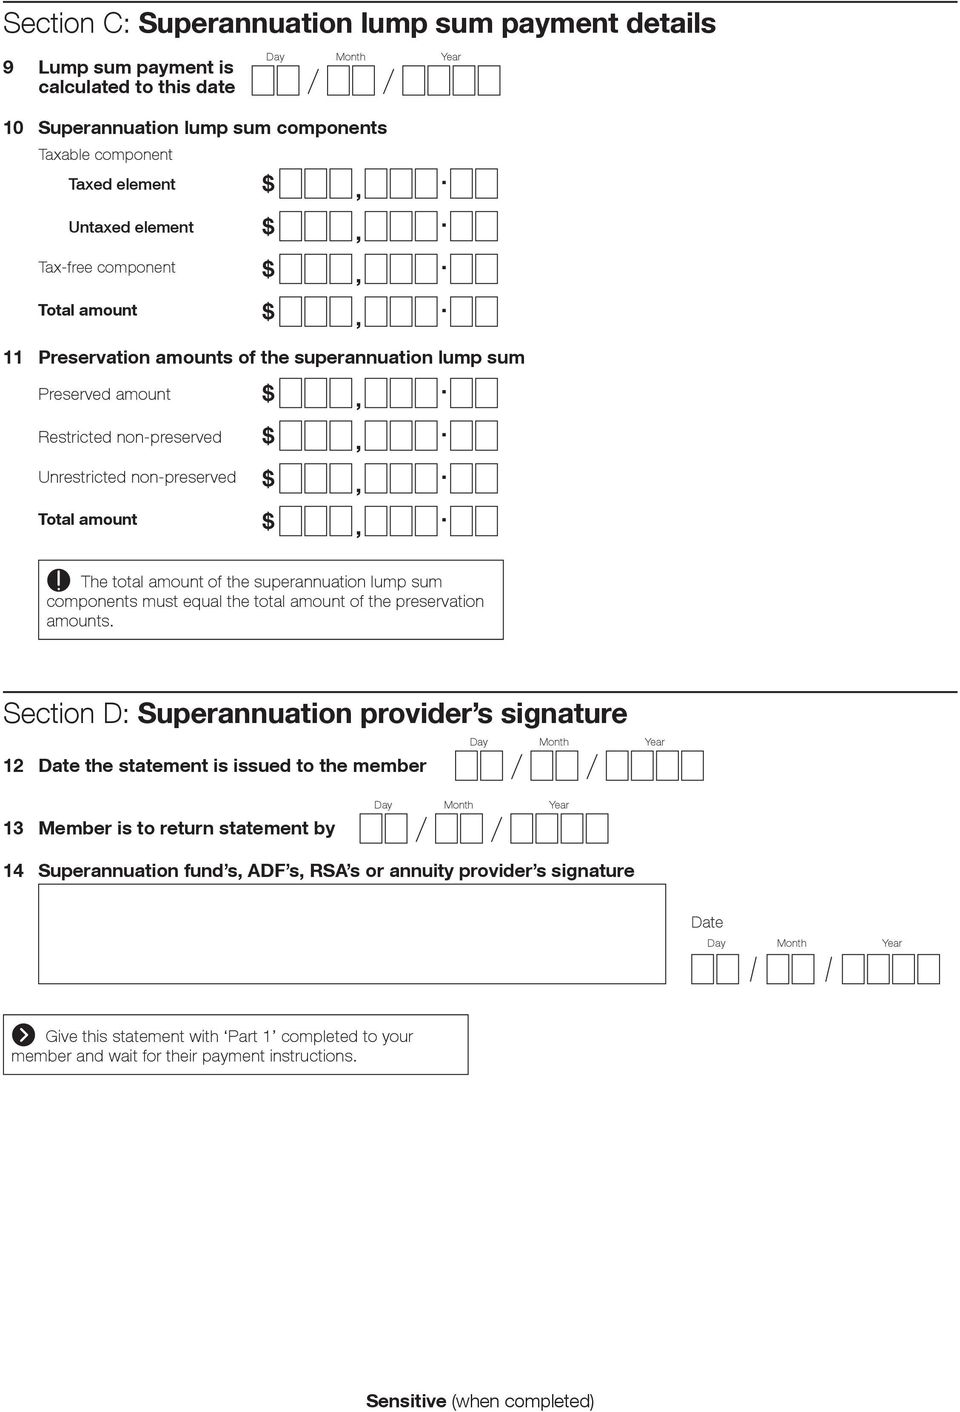 the superannuation lump sum components must equal the total amount of the preservation amounts Section D: Superannuation provider s signature 12 Date the statement is issued to the member 13 Member